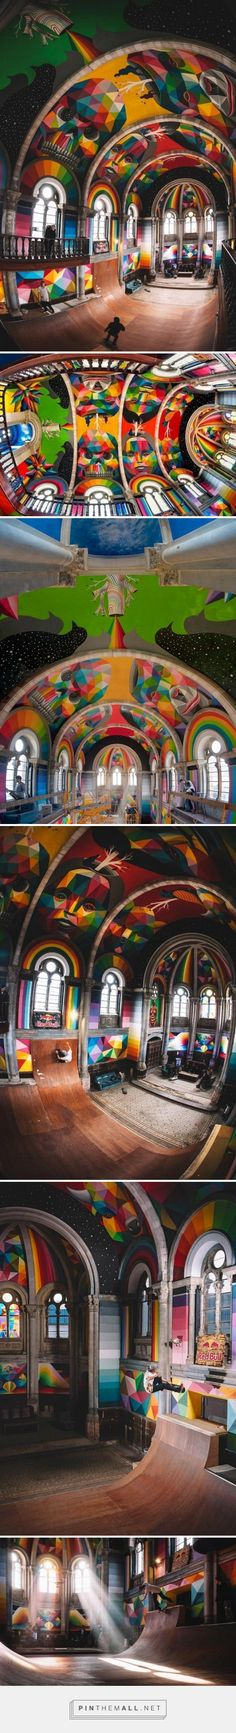 """""""Kaos Temple"""" - Okuda San Miguel (aka Okudart) has transformed a historic church in Llanera, Spain into a colorful haven for skateboarders. Created in collaboration with La Iglesia Skate park and Red Bull, the artist covered the interior sanctuary in vibrant colors and patterns that match the intensity of the sport."""